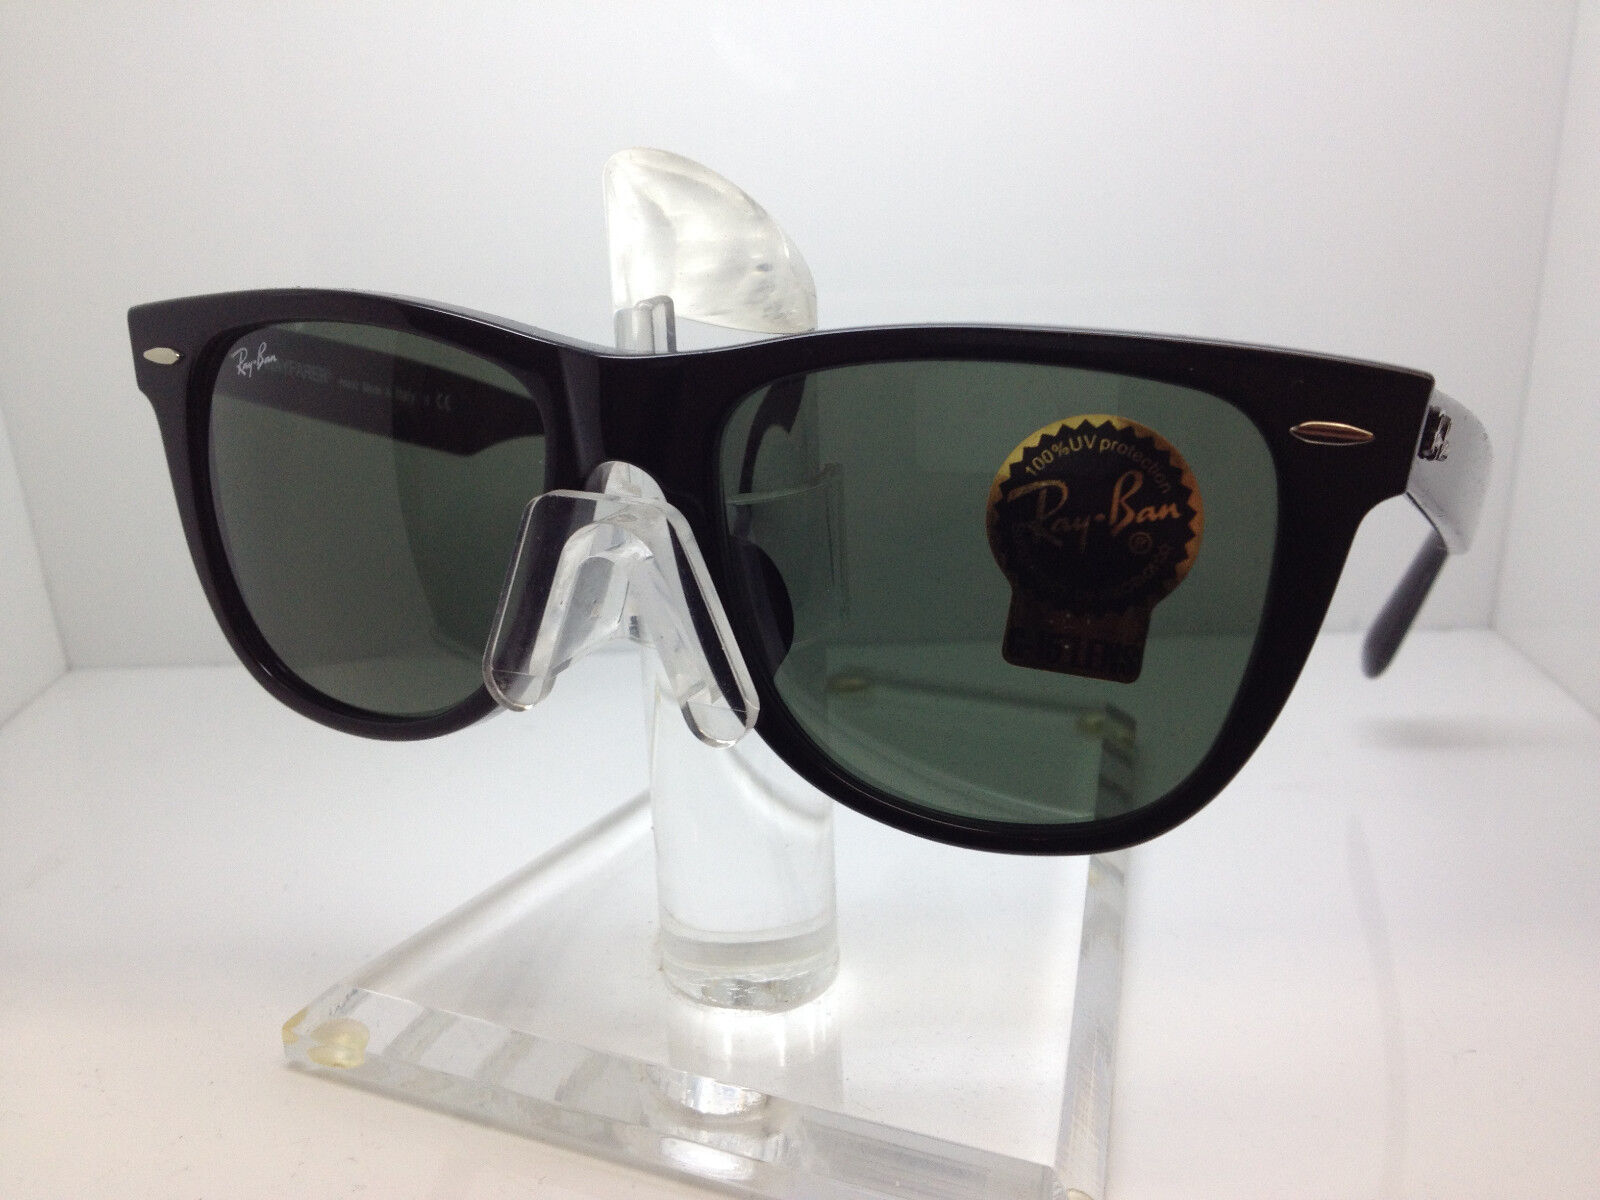 816aab44c3 Ray Ban Sunglasses RB 2140f 901s Matte Black 54mm for sale online